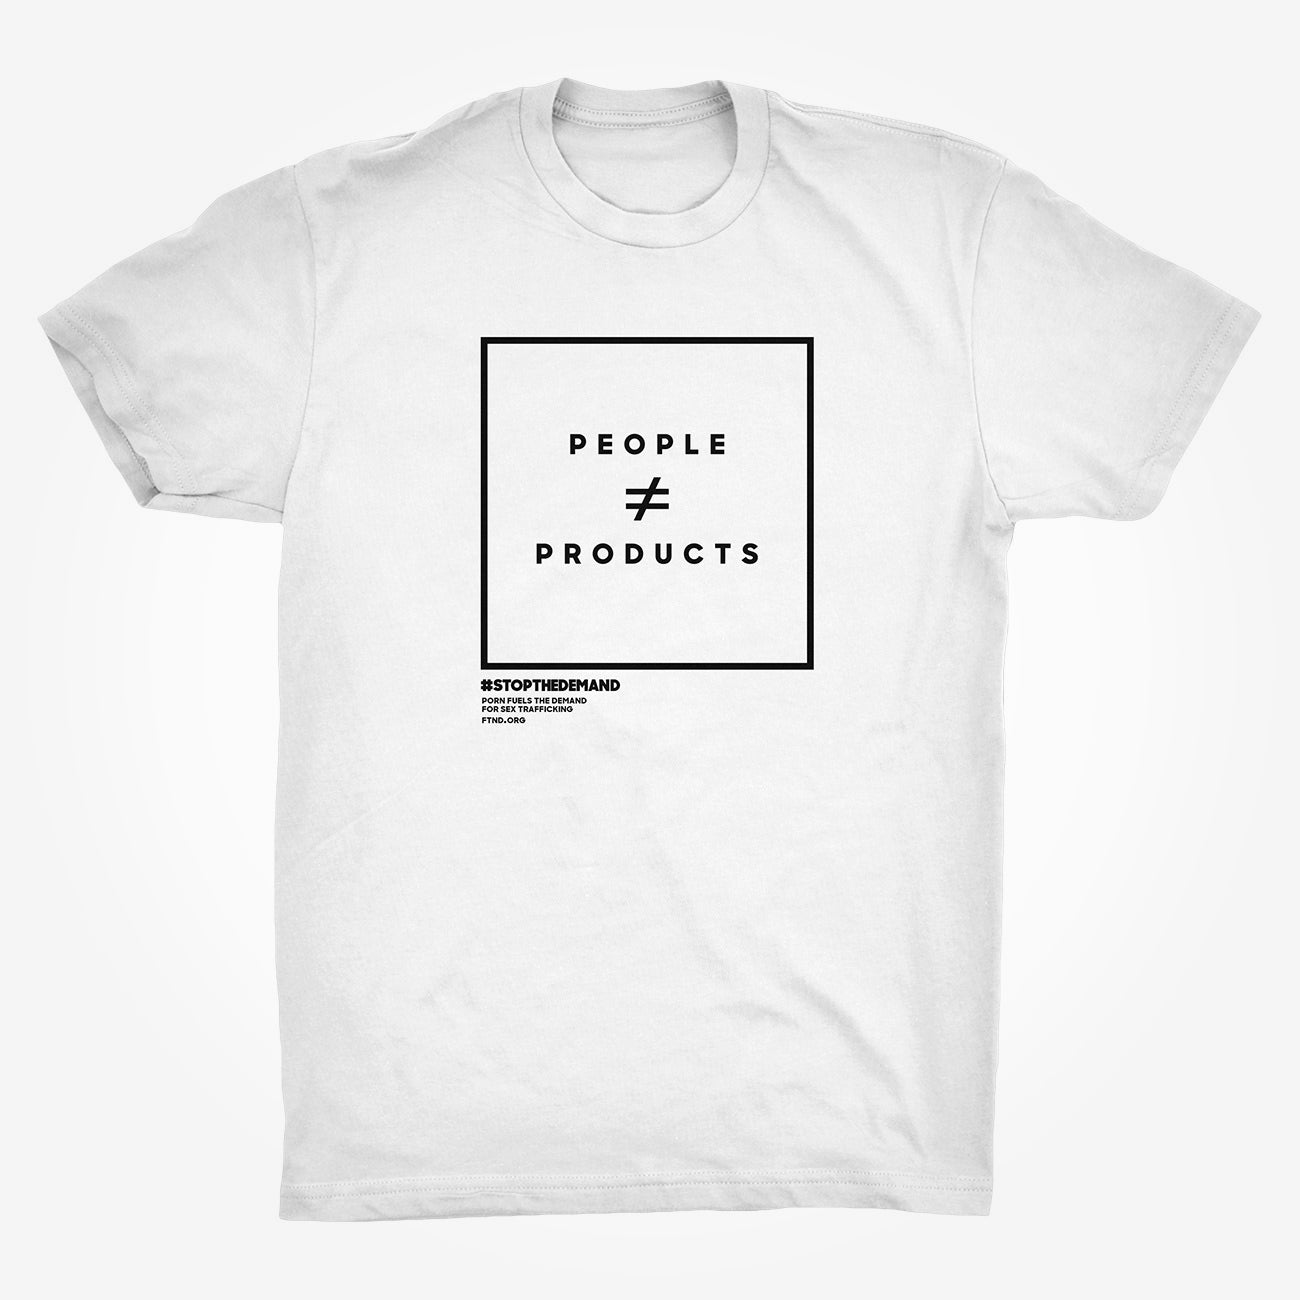 'People ≠ Products' - White